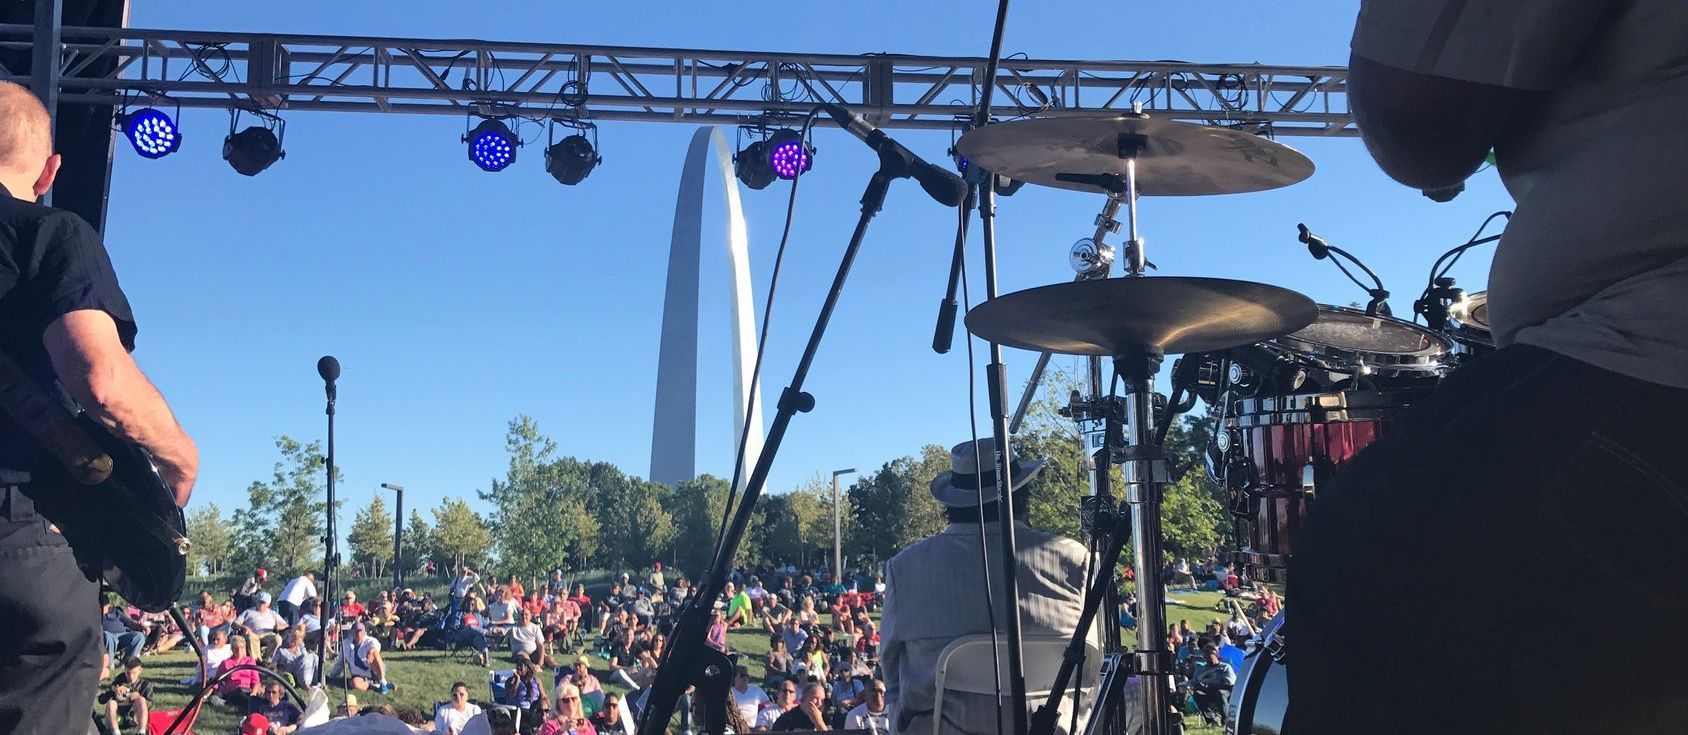 An outdoor concert by the St. Louis Arch